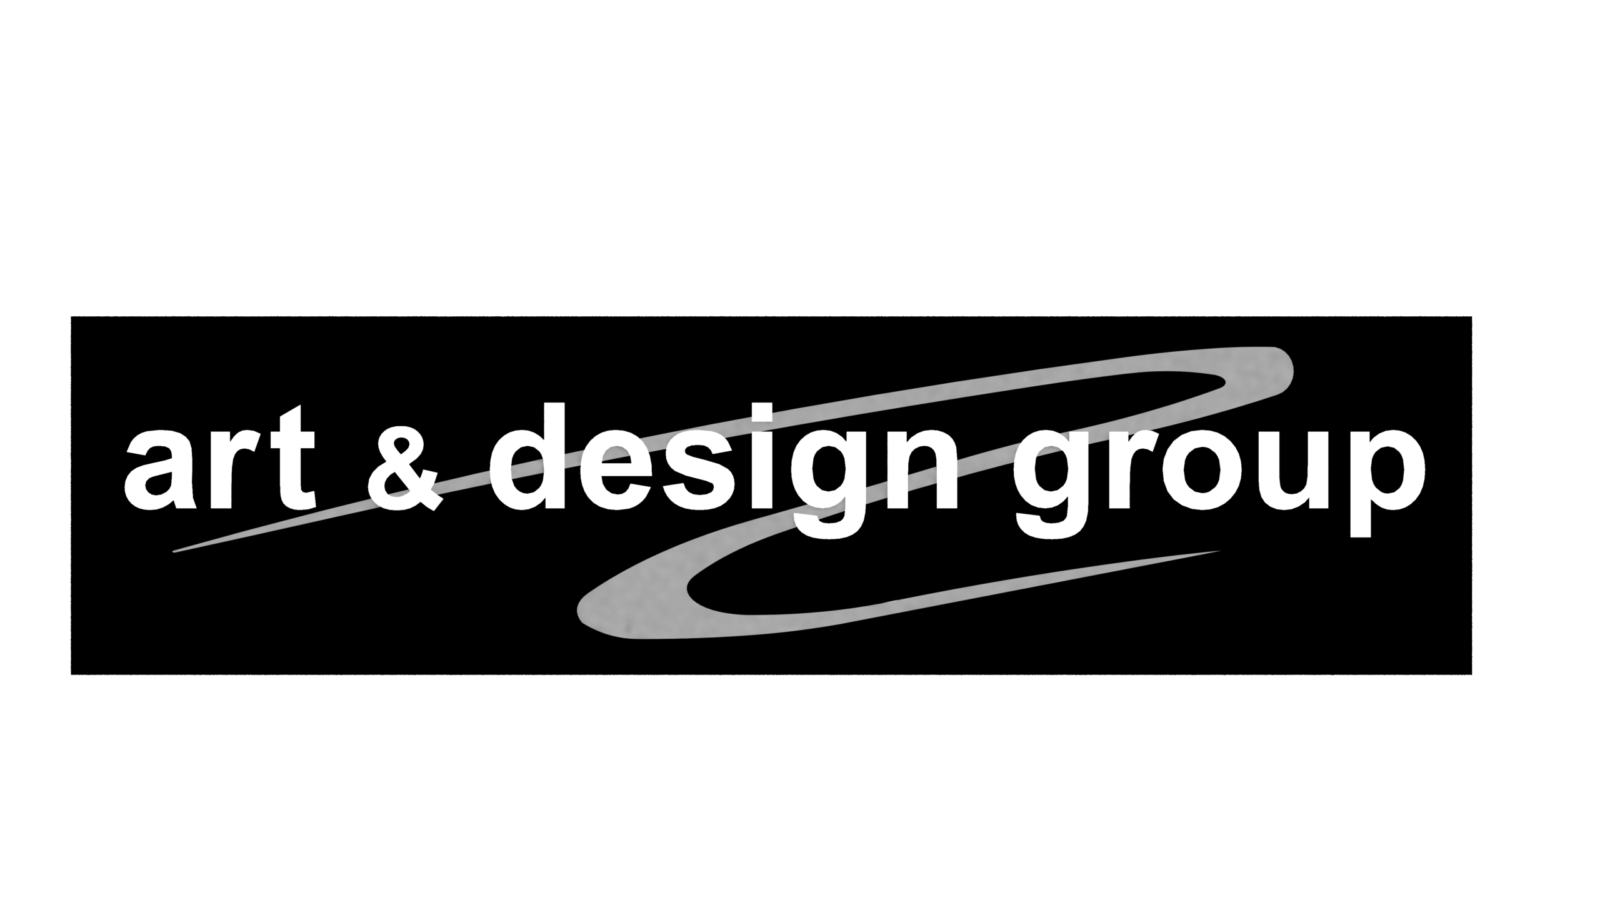 Art And Design group